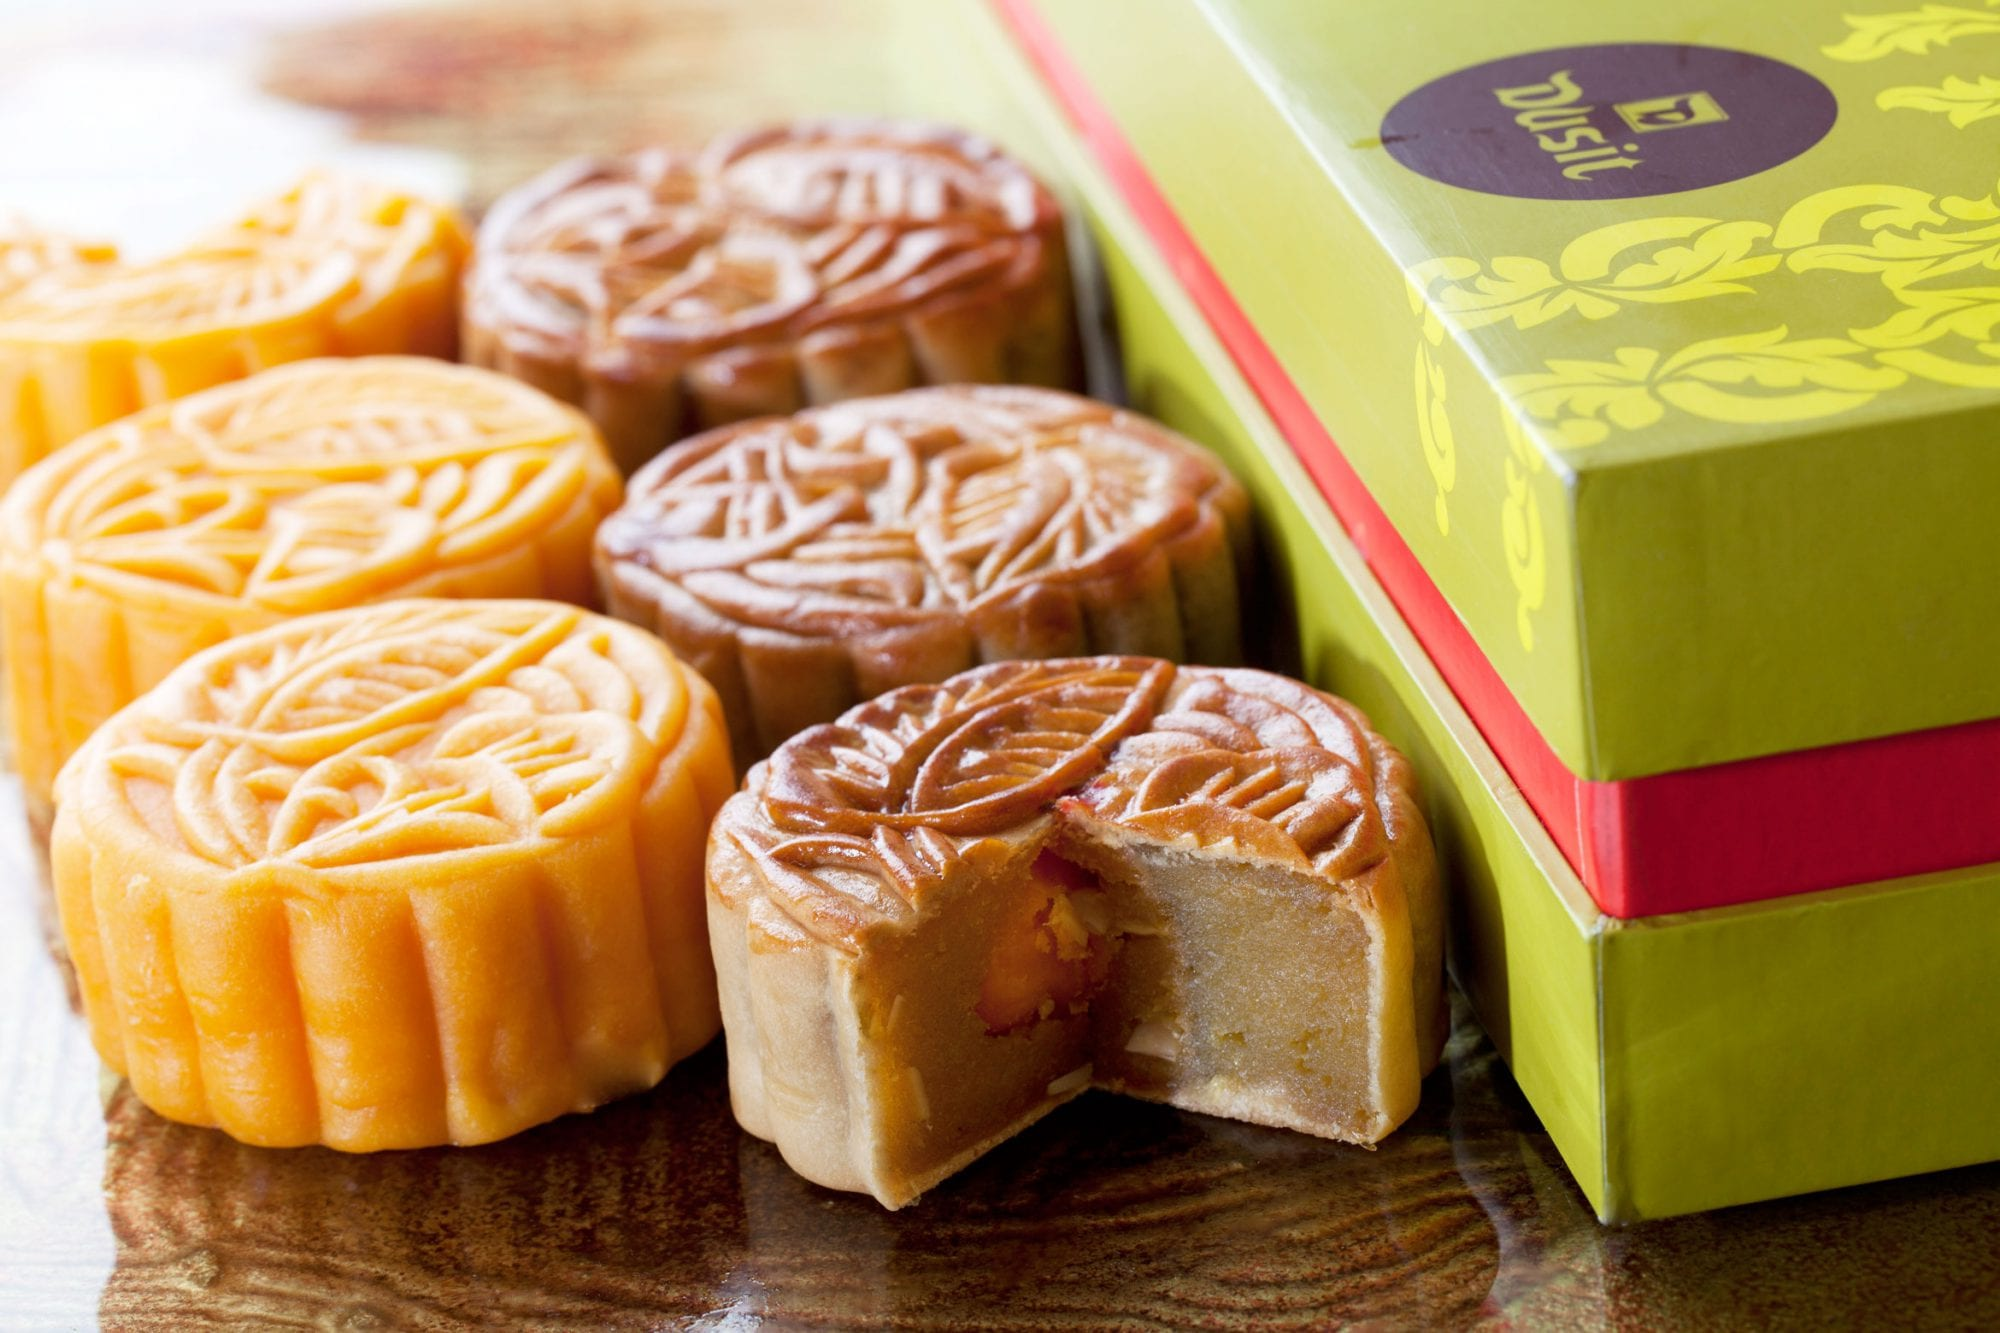 Moon cakes: not just pie in the sky